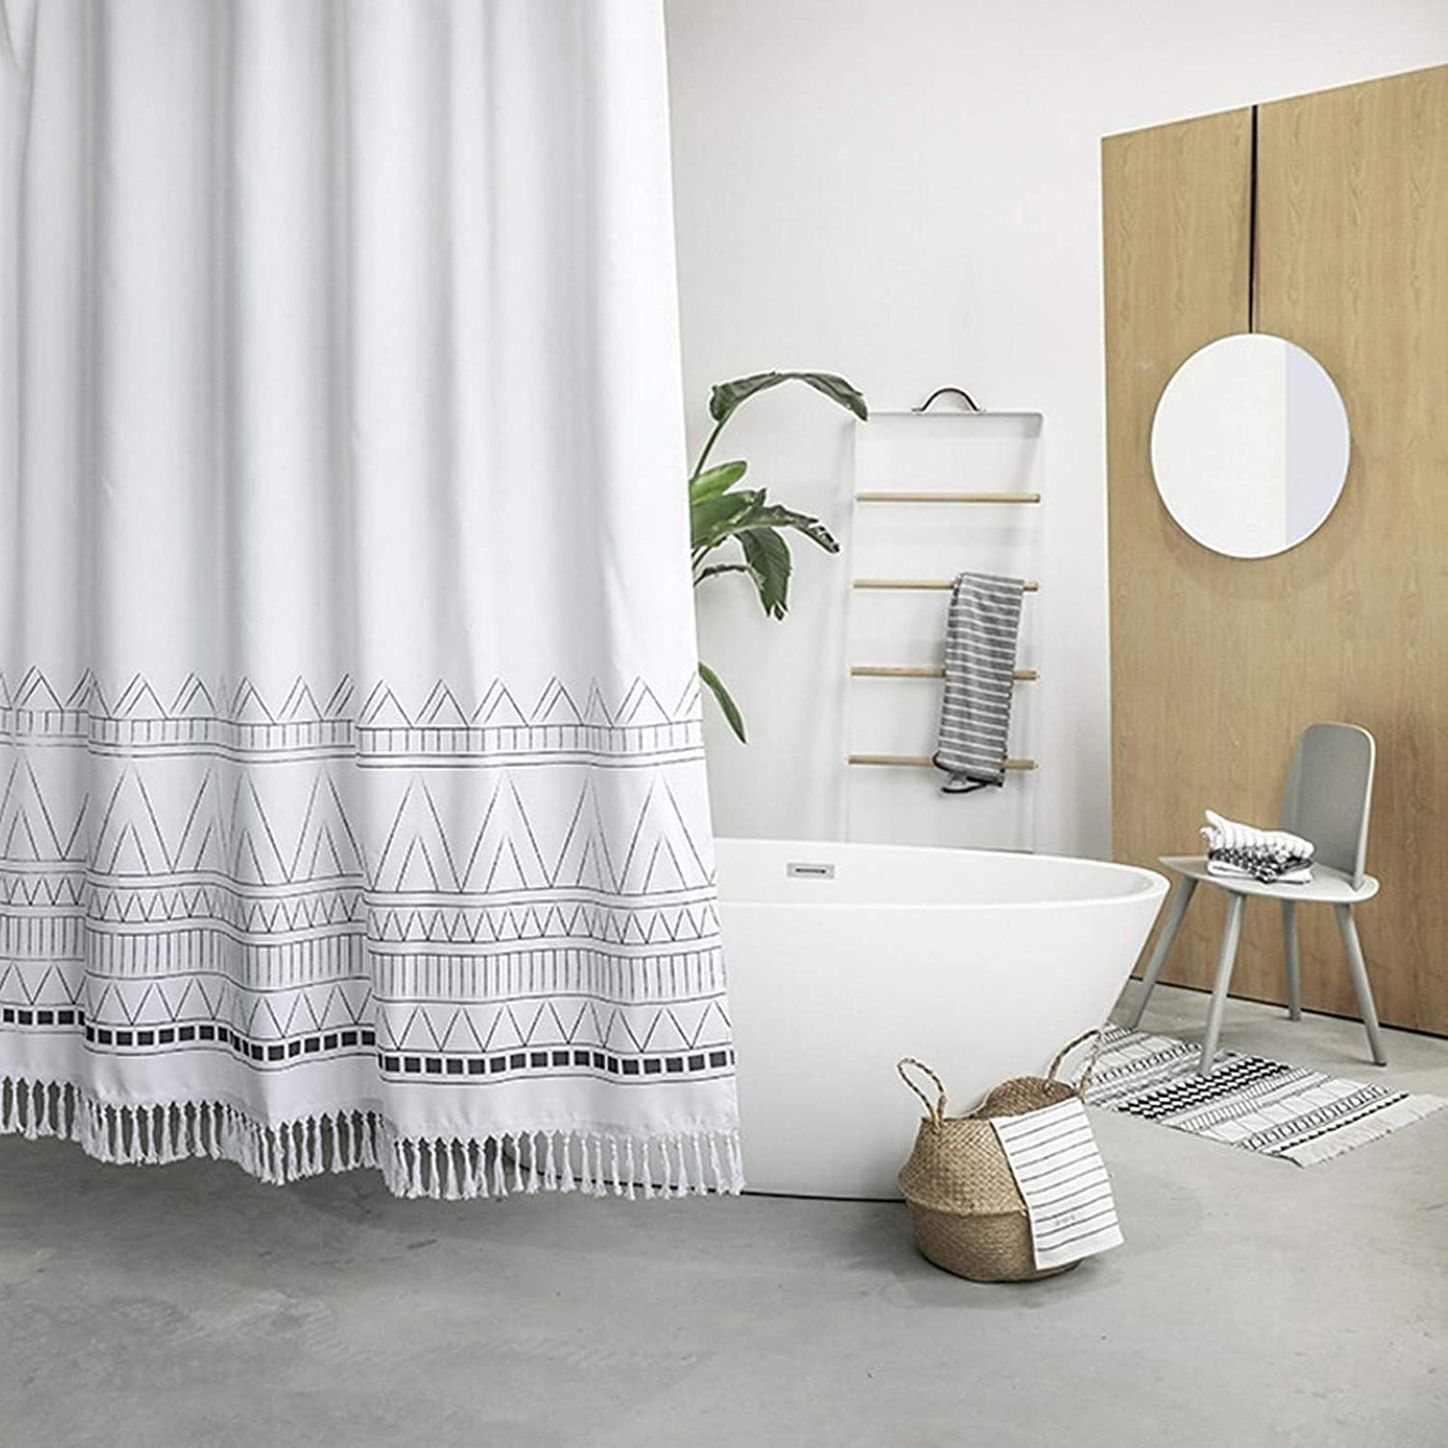 17 Best Shower Curtains 2021 The, Curtains For Bathrooms